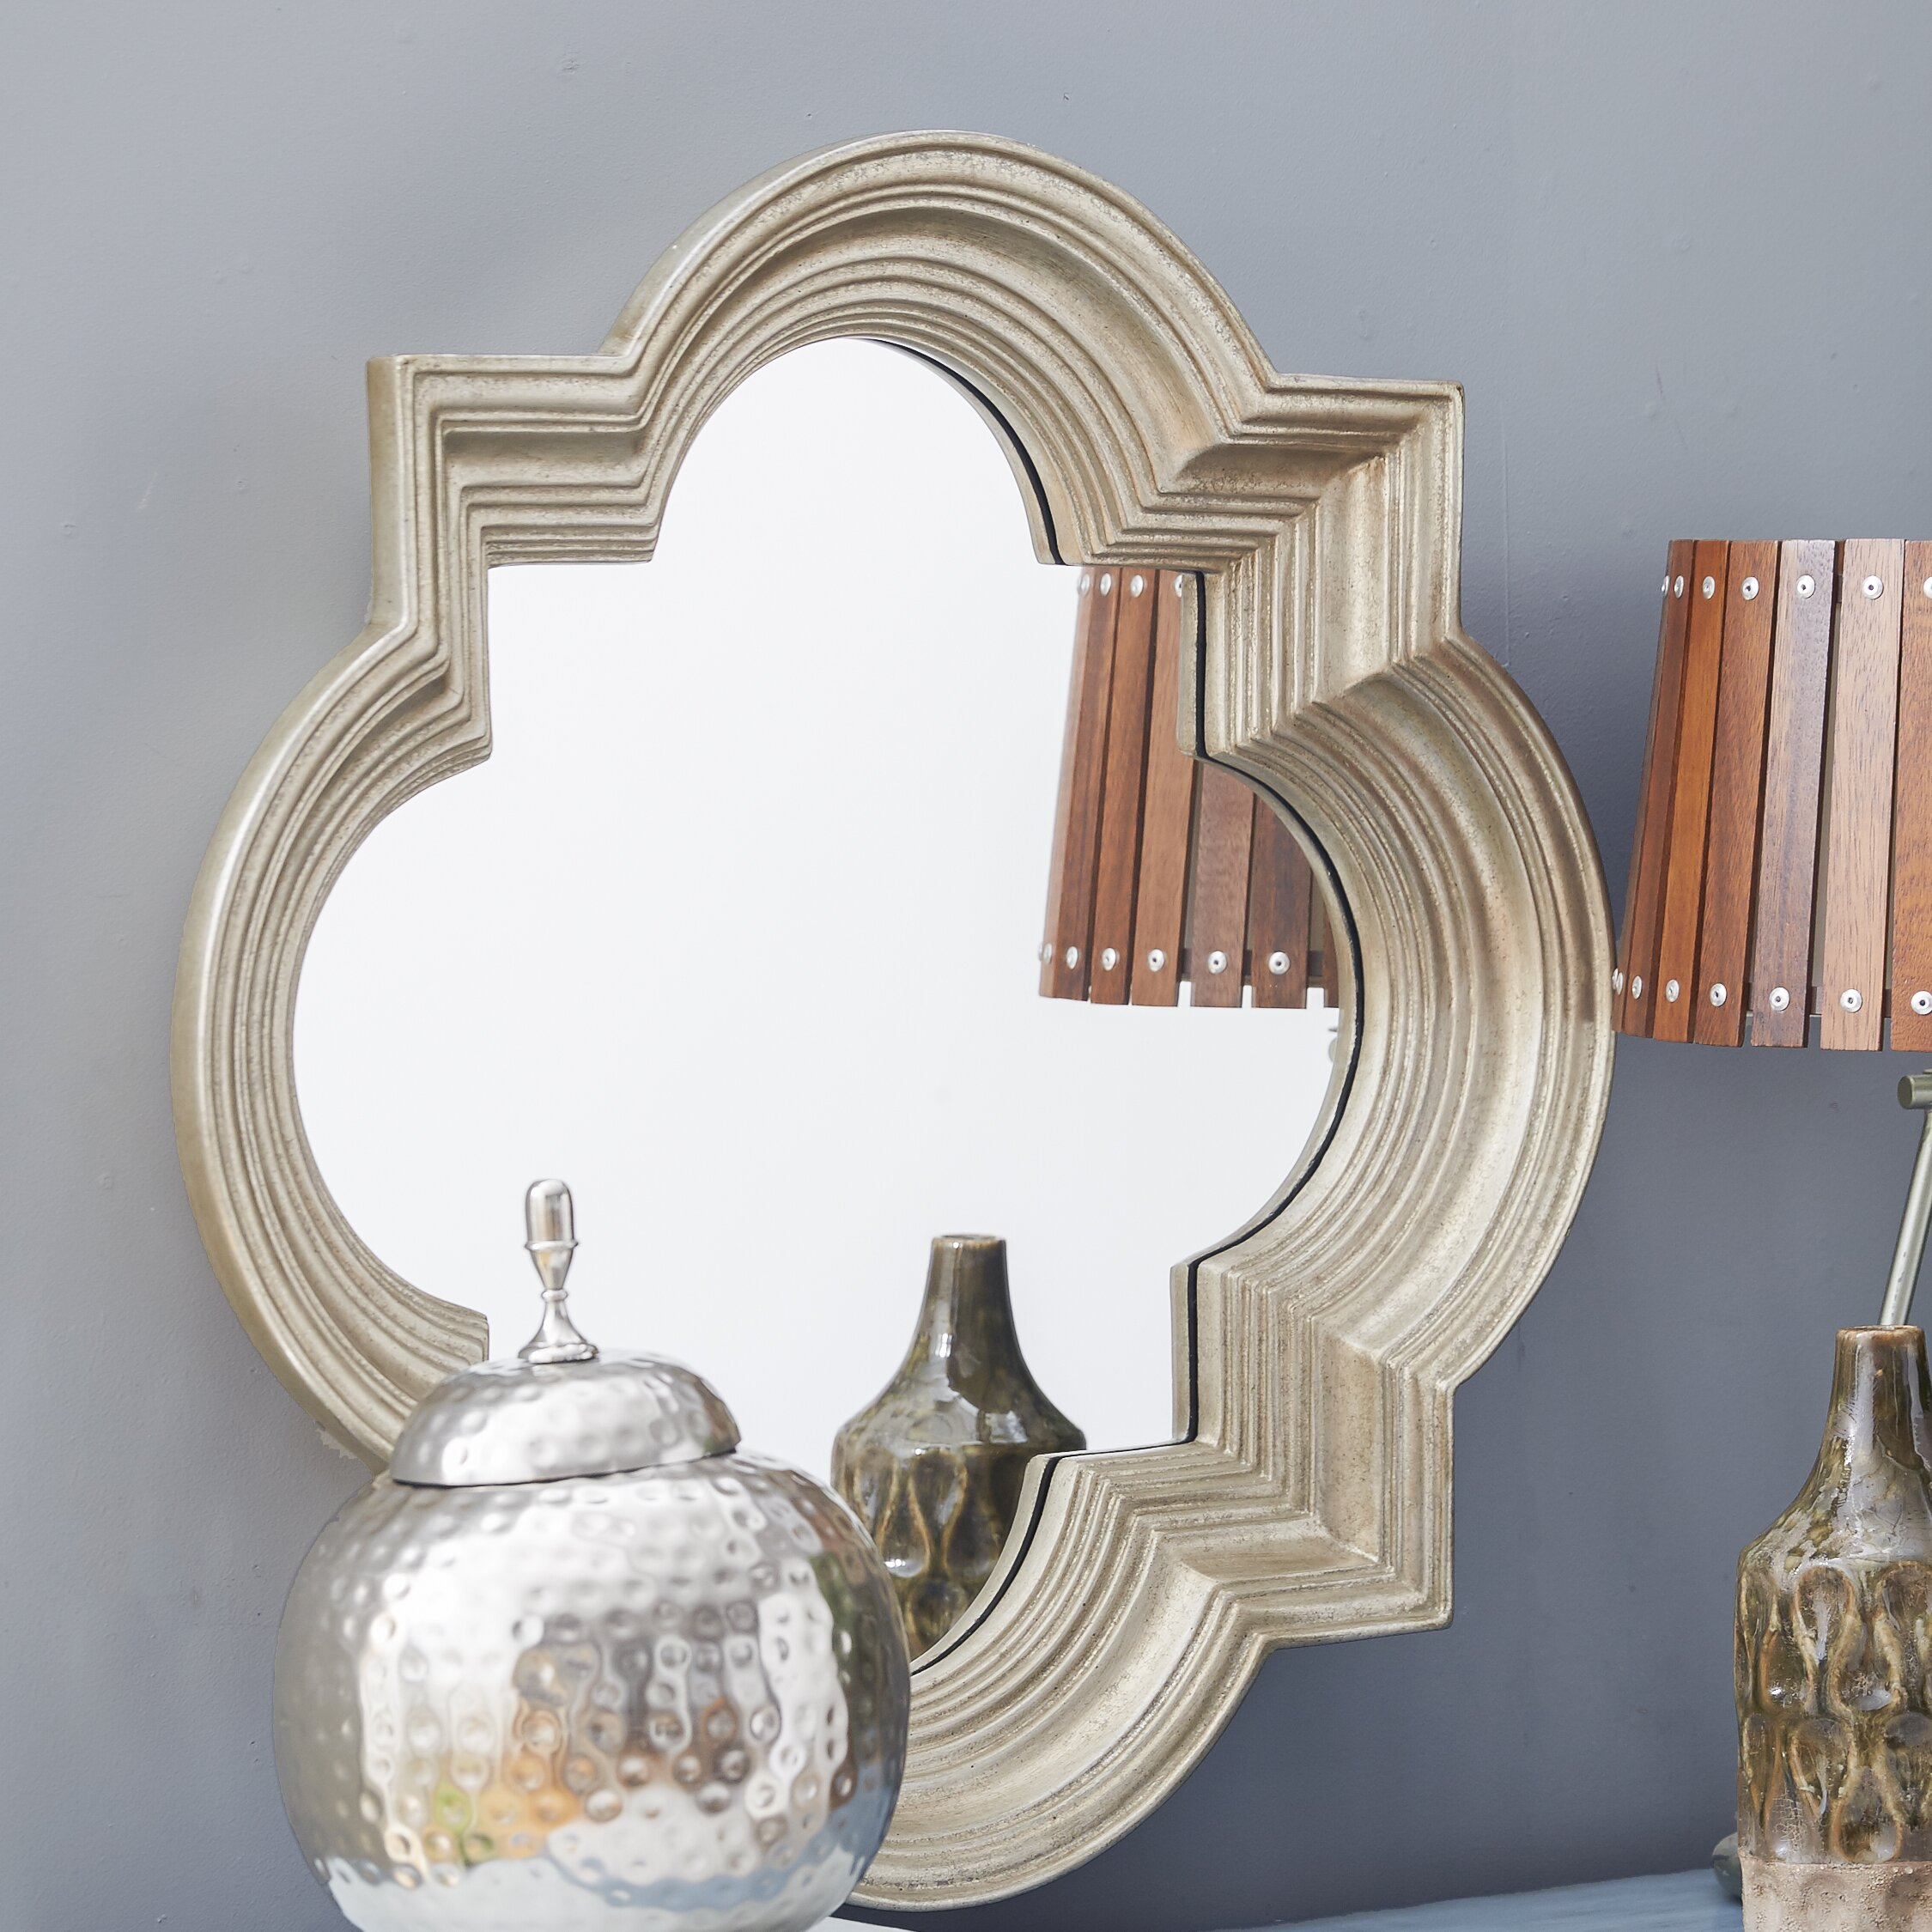 Osp designs gatsby decorative beveled wall mirror for Small decorative mirrors